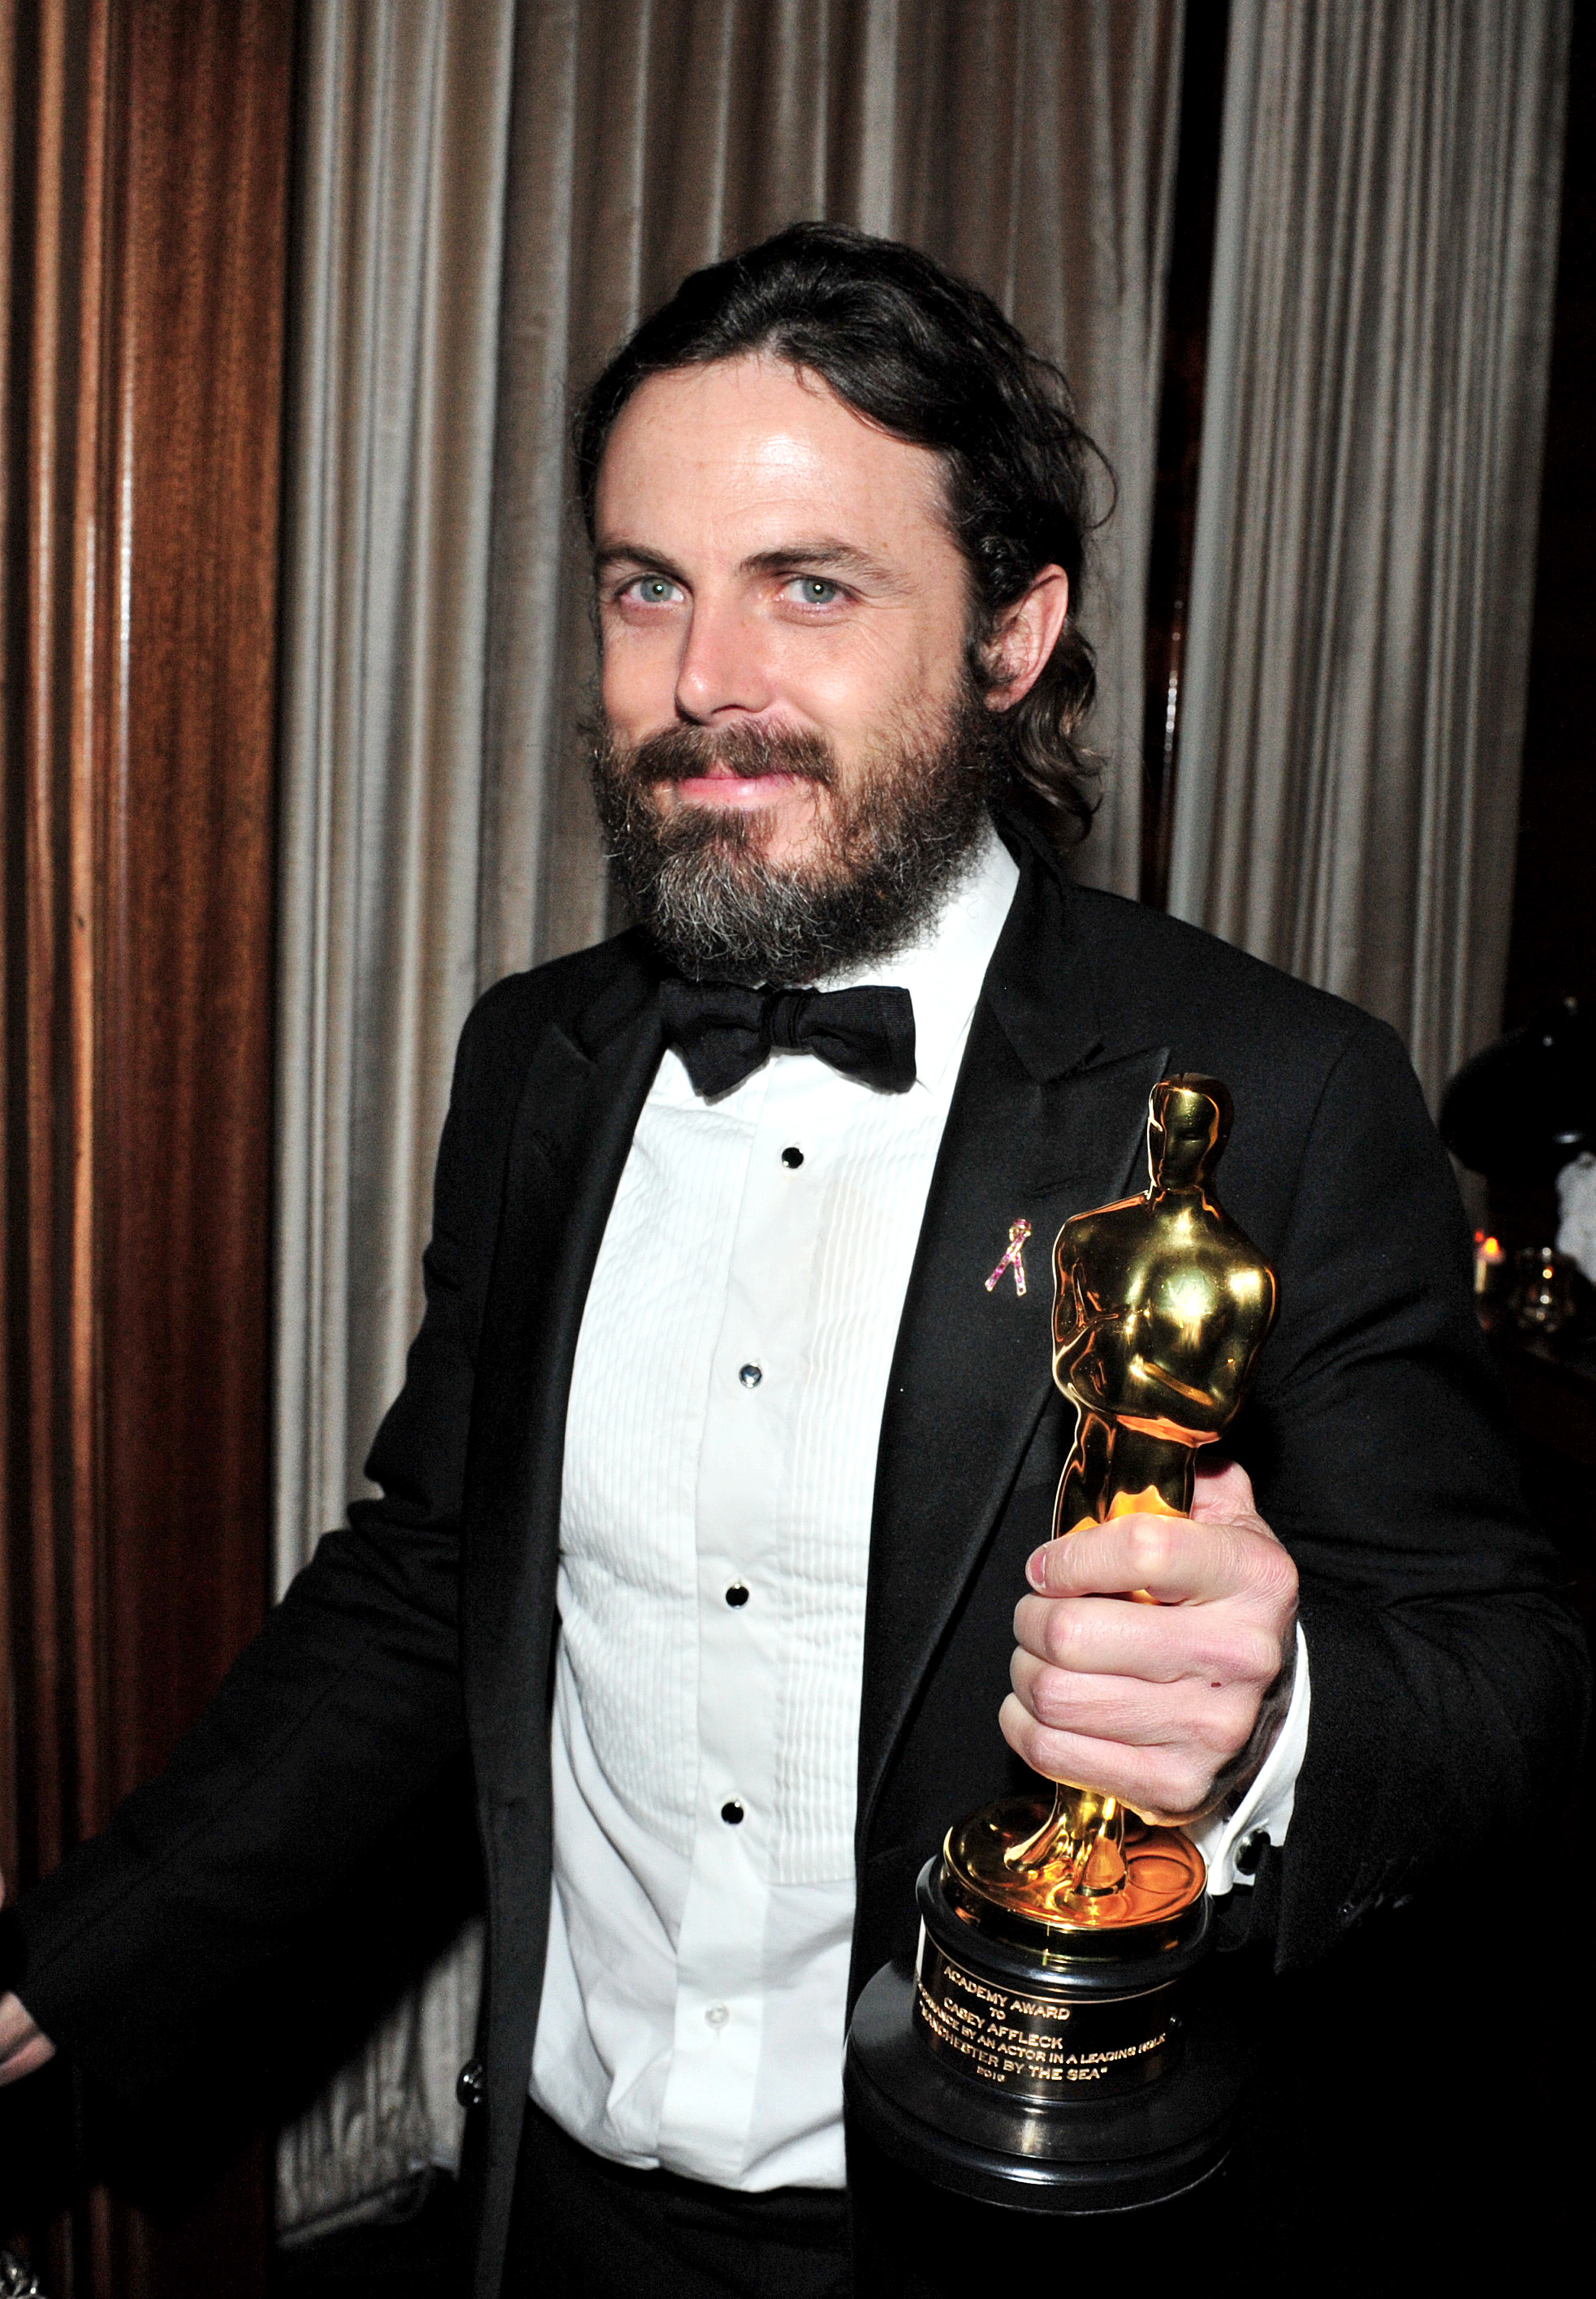 WEST HOLLYWOOD, CA - FEBRUARY 26: Actor Casey Affleck with his award for best actor in 'Manchester By The Sea' attends the Amazon Studios Oscar Celebration at Delilah on February 26, 2017 in West Hollywood, California. Jerod Harris/Getty Images/AFP